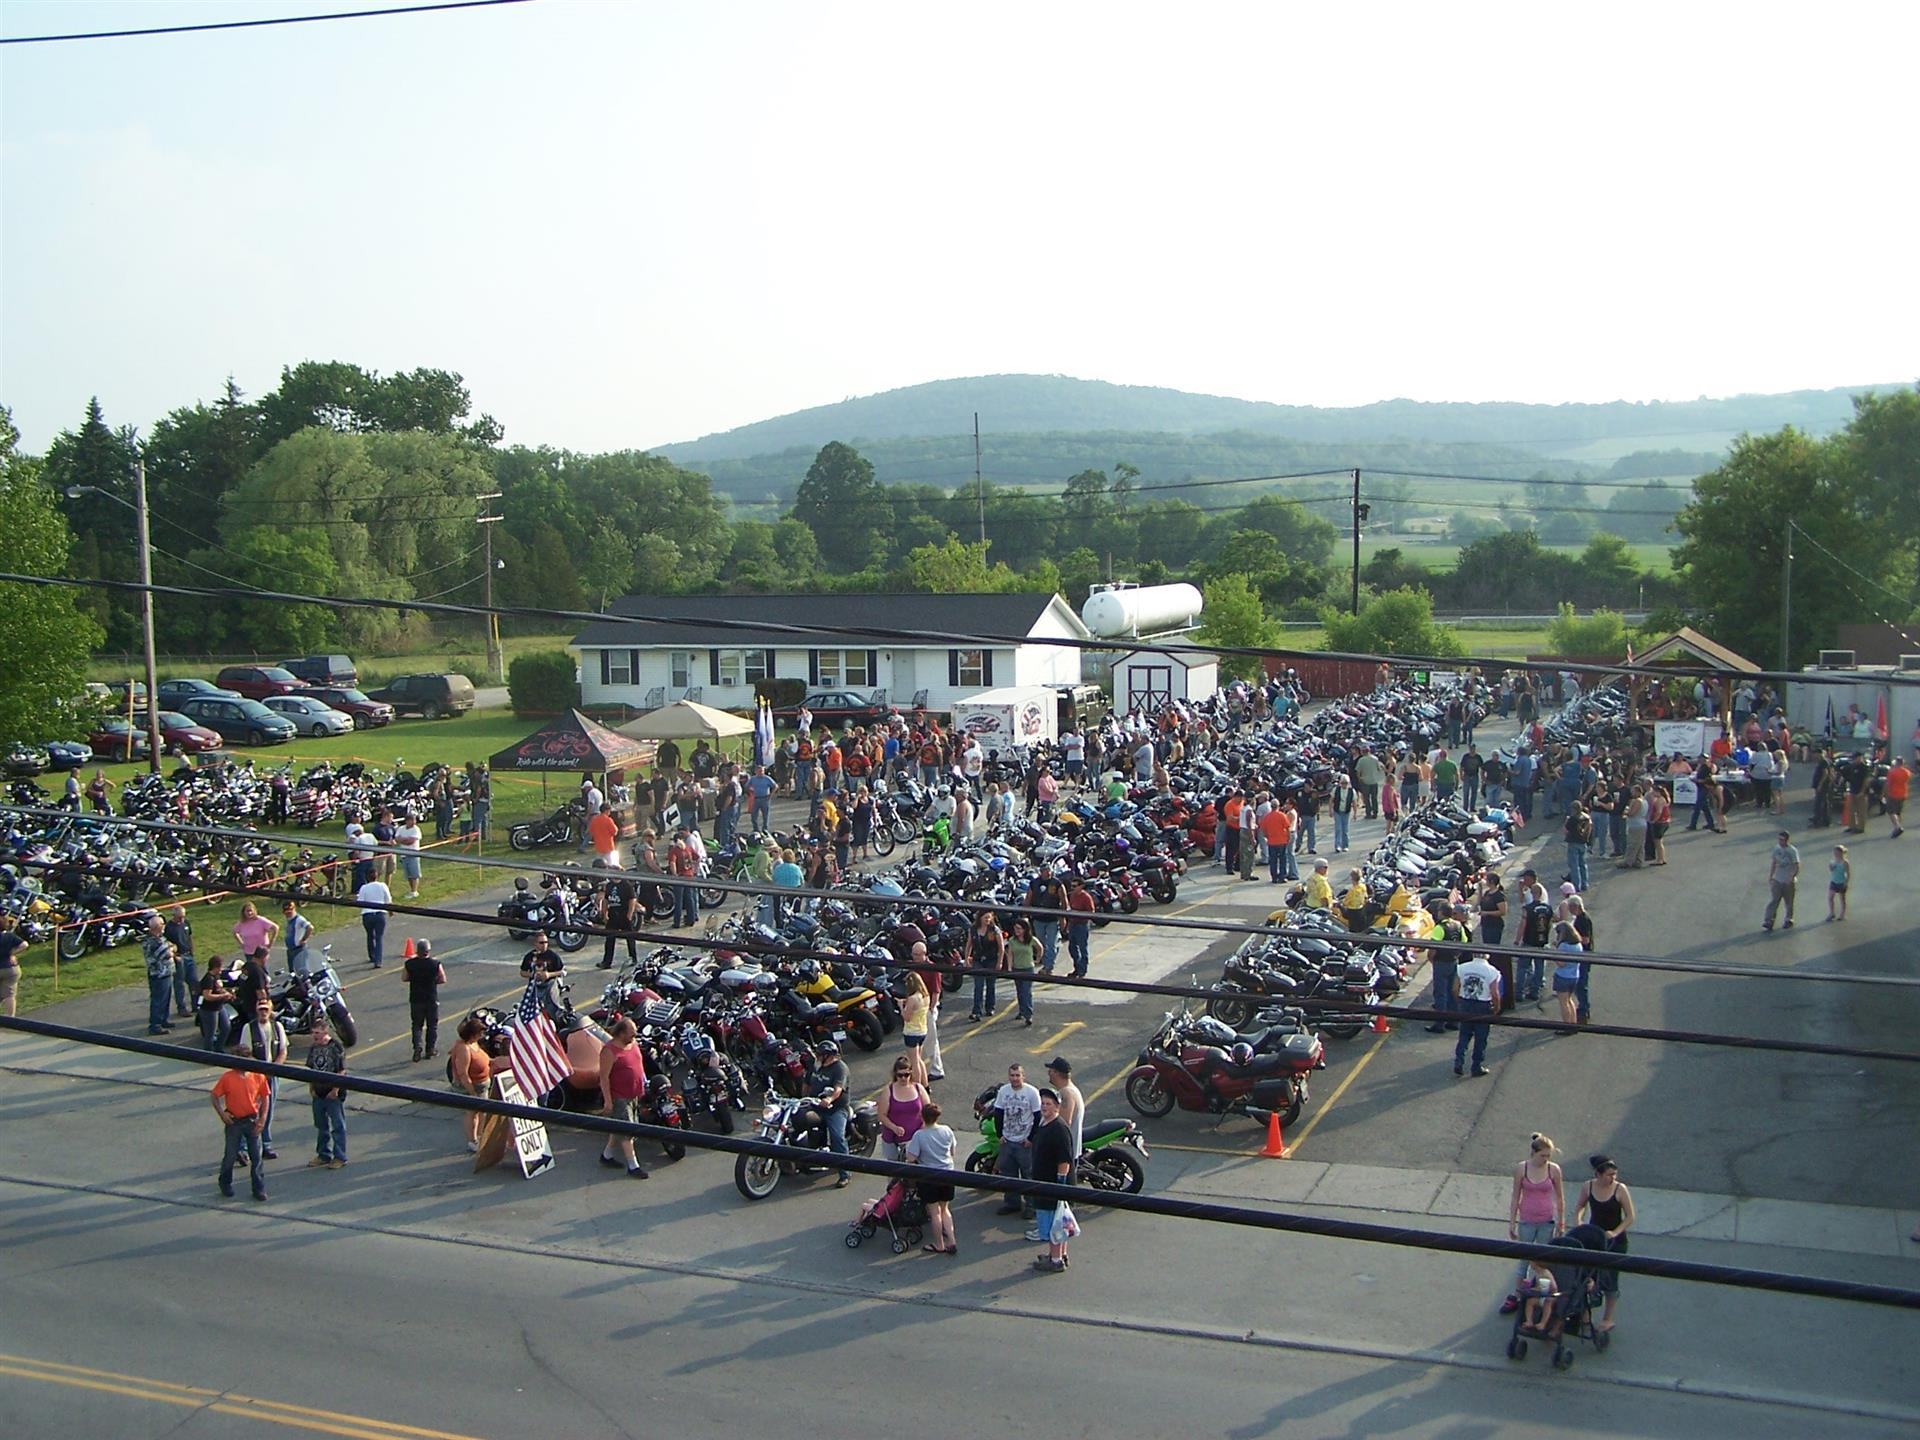 Aerial view of parking lot filled with motorcycles